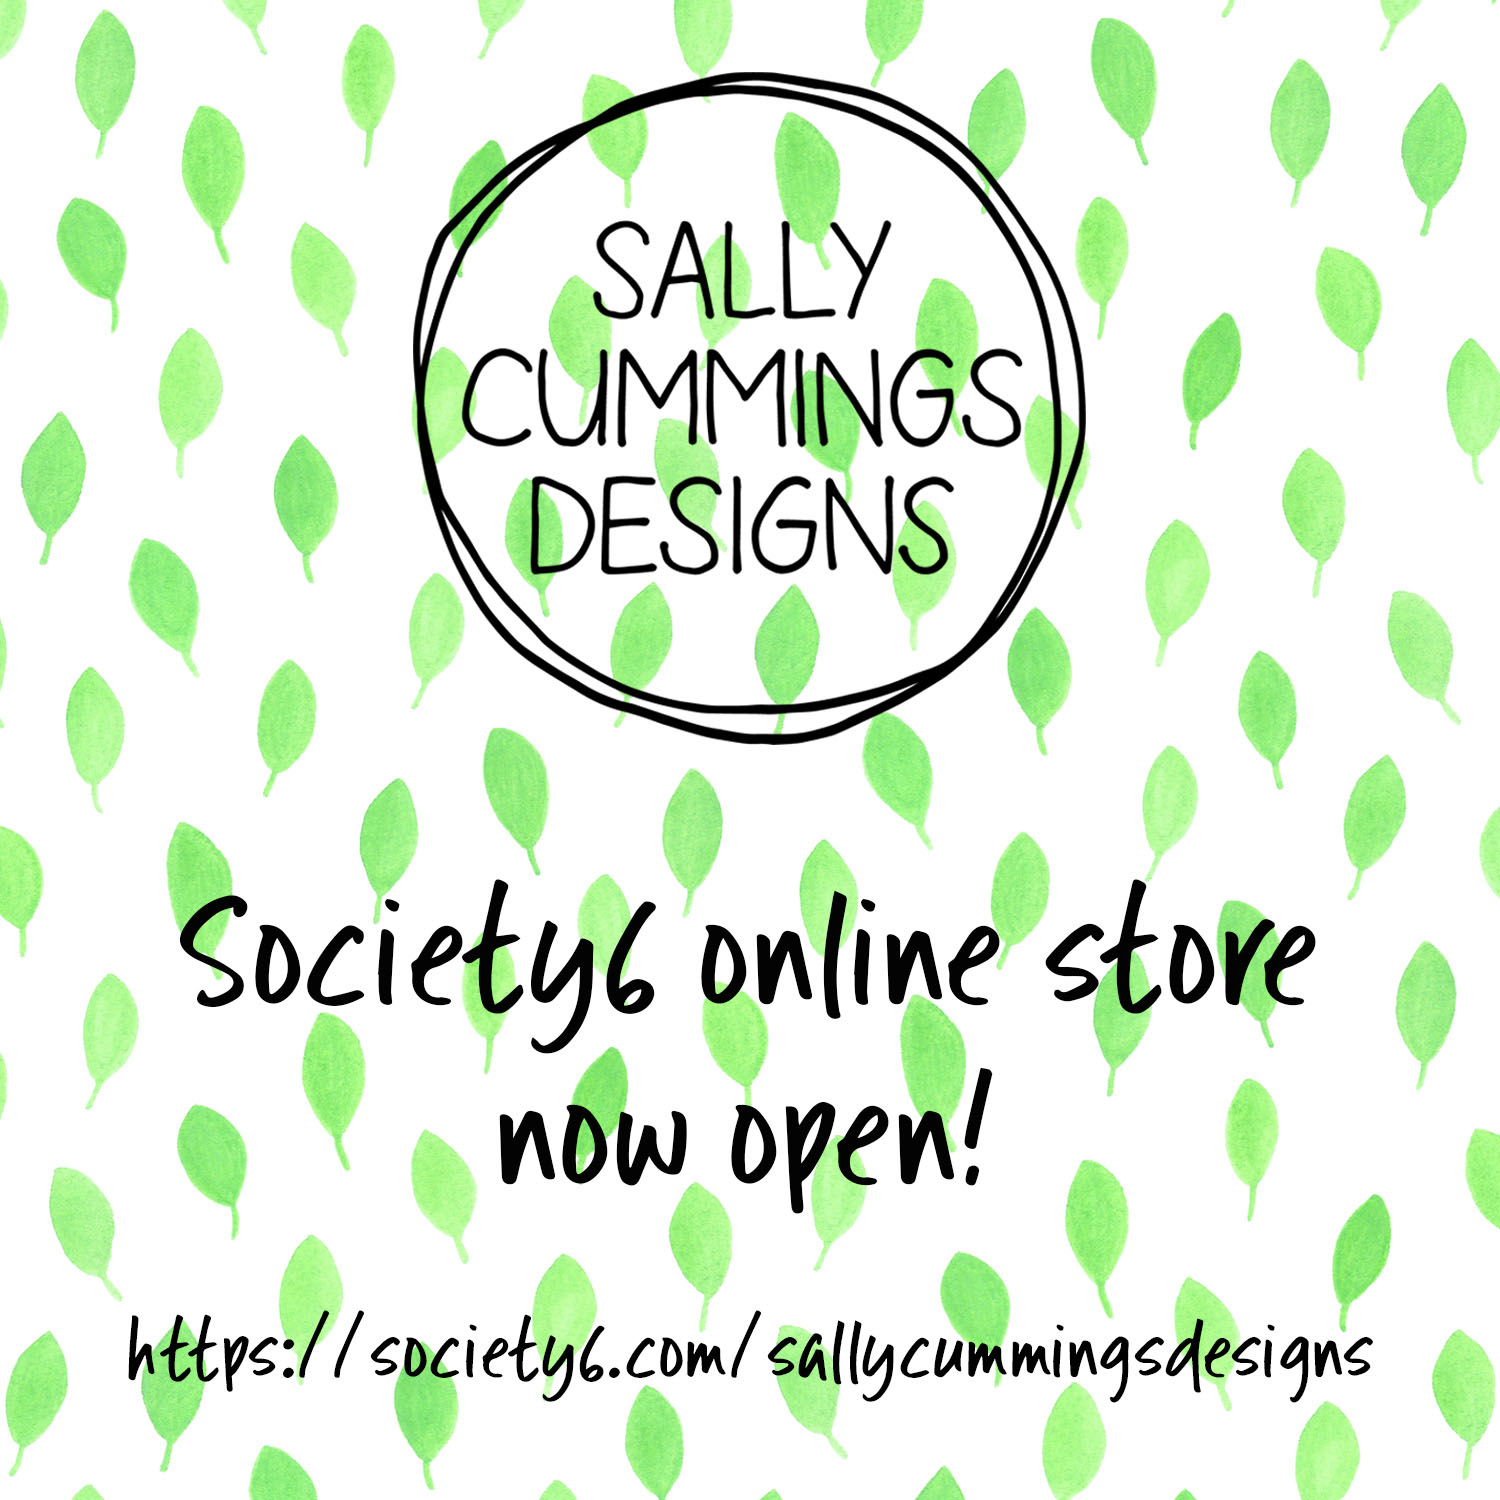 Society6 online store launch graphic